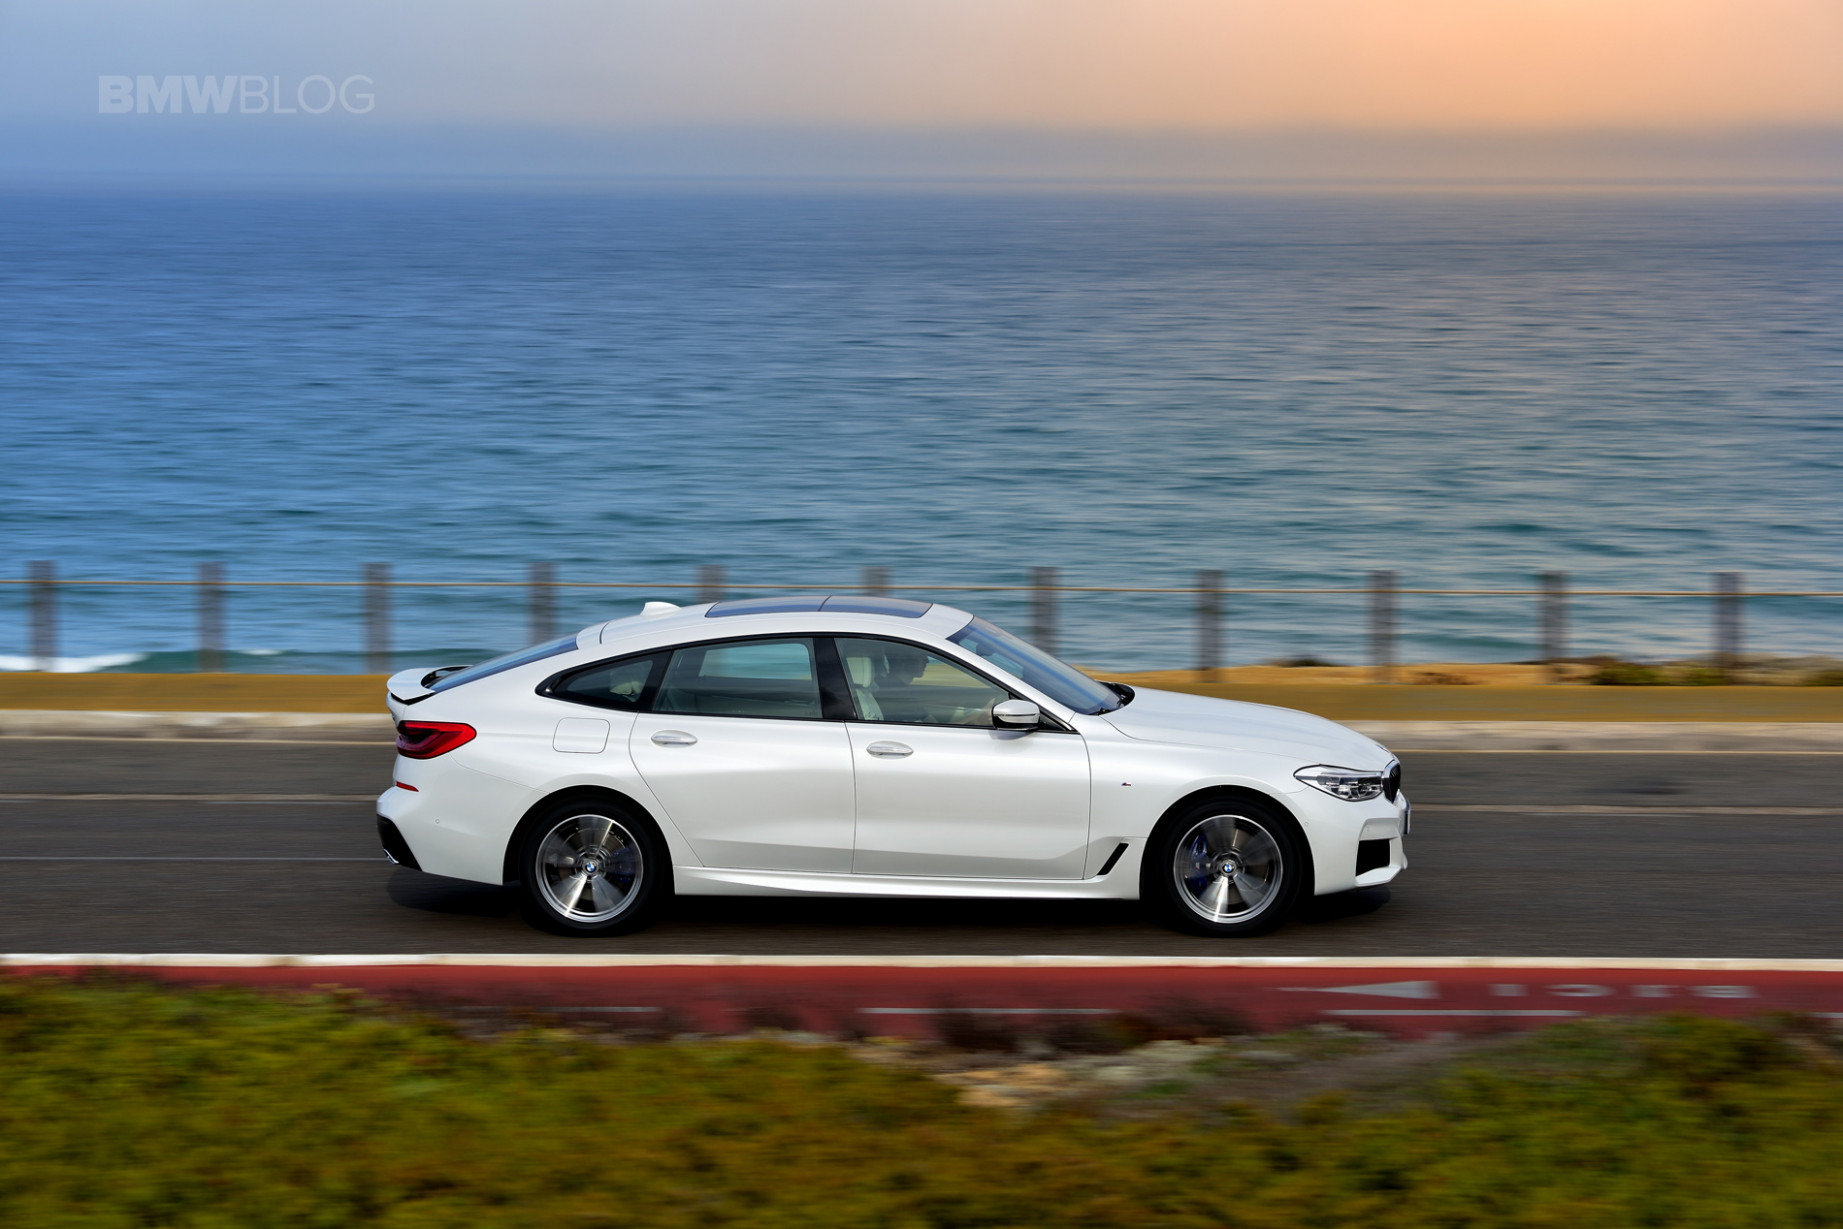 BMW 7 Series GT and 7 Series GT discontinued in the US for 7